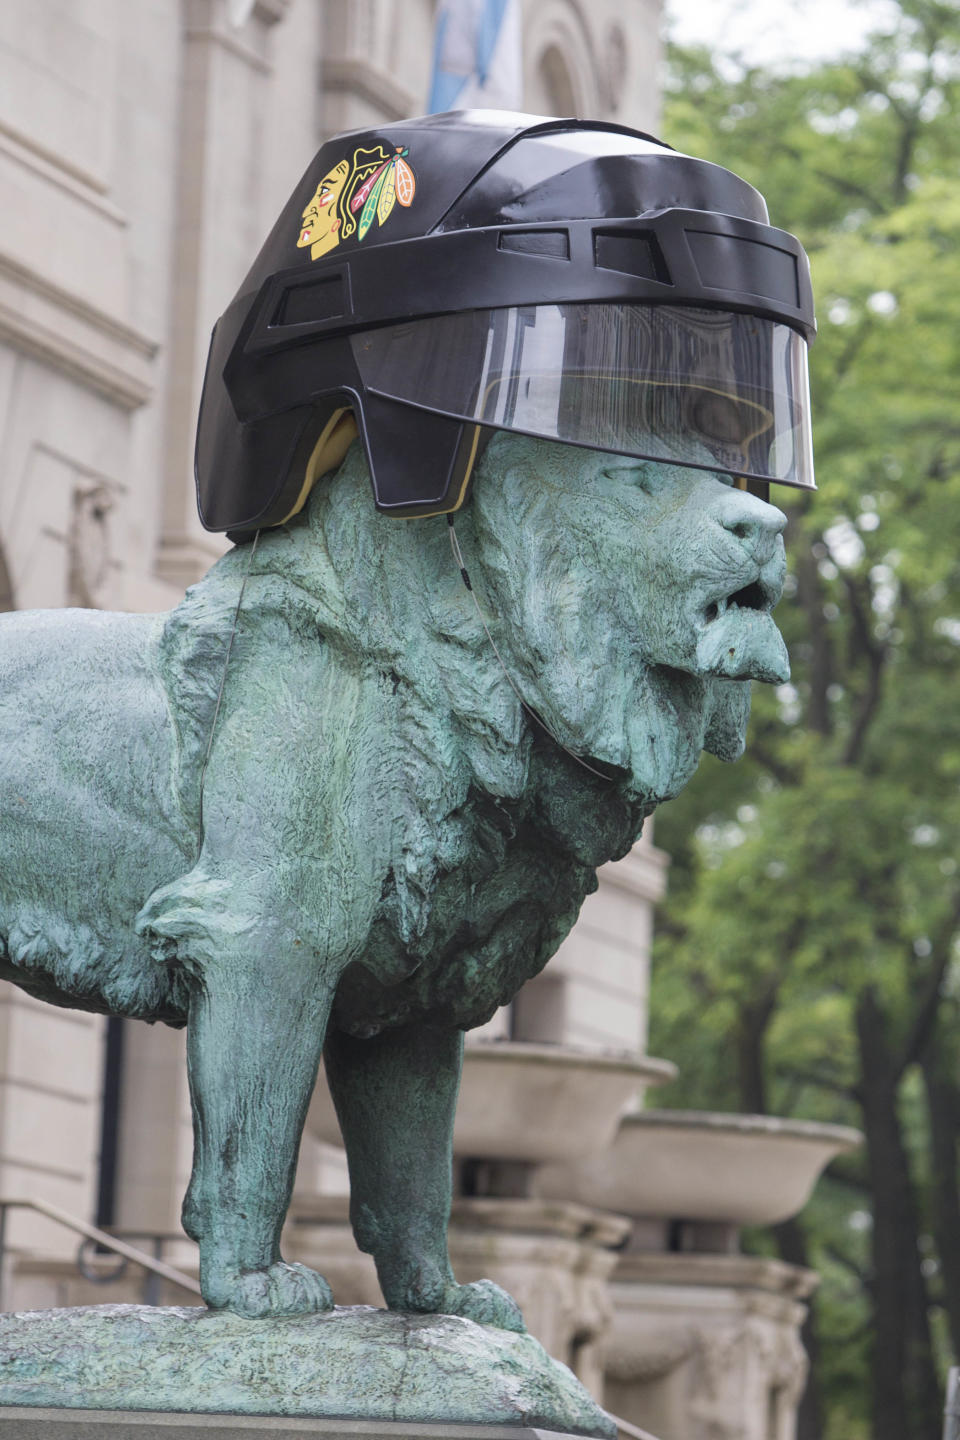 An oversized Chicago Blackhawks hockey helmet sits on one of the lion sculptures outside the entrance to the Art Institute of Chicago in celebration of the team's upcoming appearance in the Stanley Cup finals Wednesday, June 12, 2013, in Chicago. The Blackhawks host the Boston Bruins in Game 1 on Wednesday. (AP Photo/Scott Eisen)